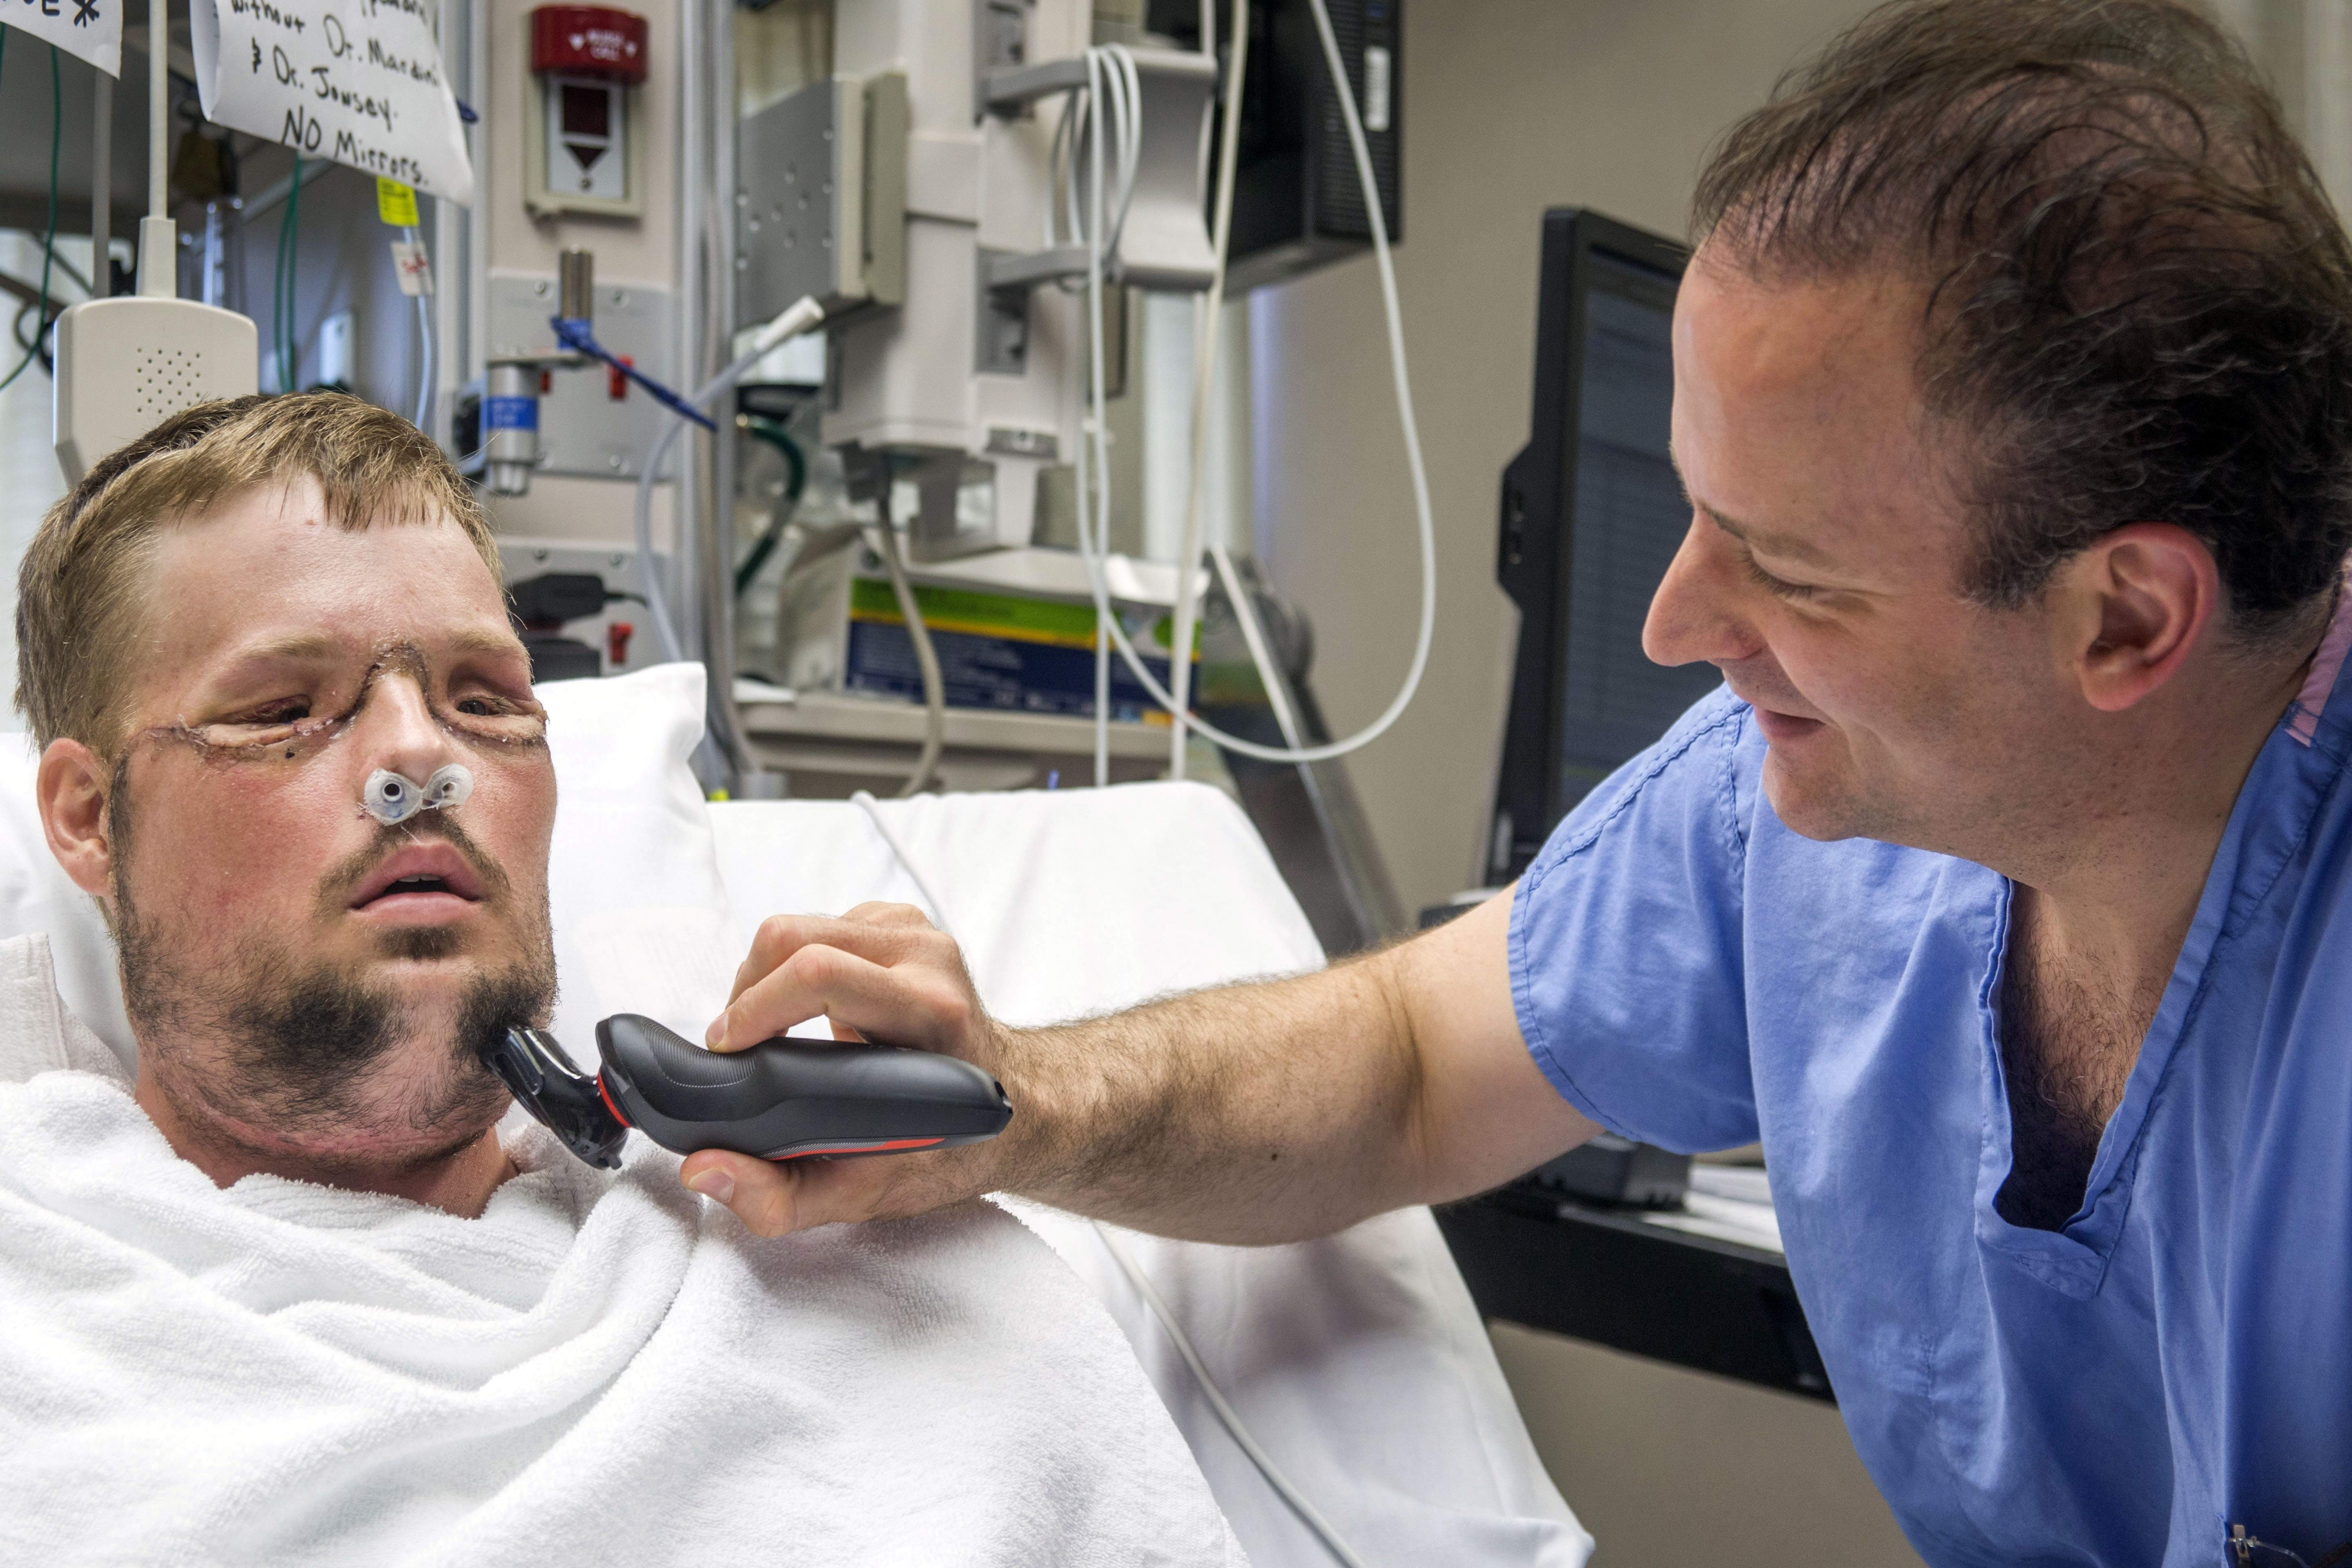 In this July 3, 2016 photo provided by the Mayo Clinic, Dr. Samir Mardini shaves the face of his patient, Andy Sandness, days after leading a team that performed the first face transplant surgery at the hospital. THE ASSOCIATED PRESS